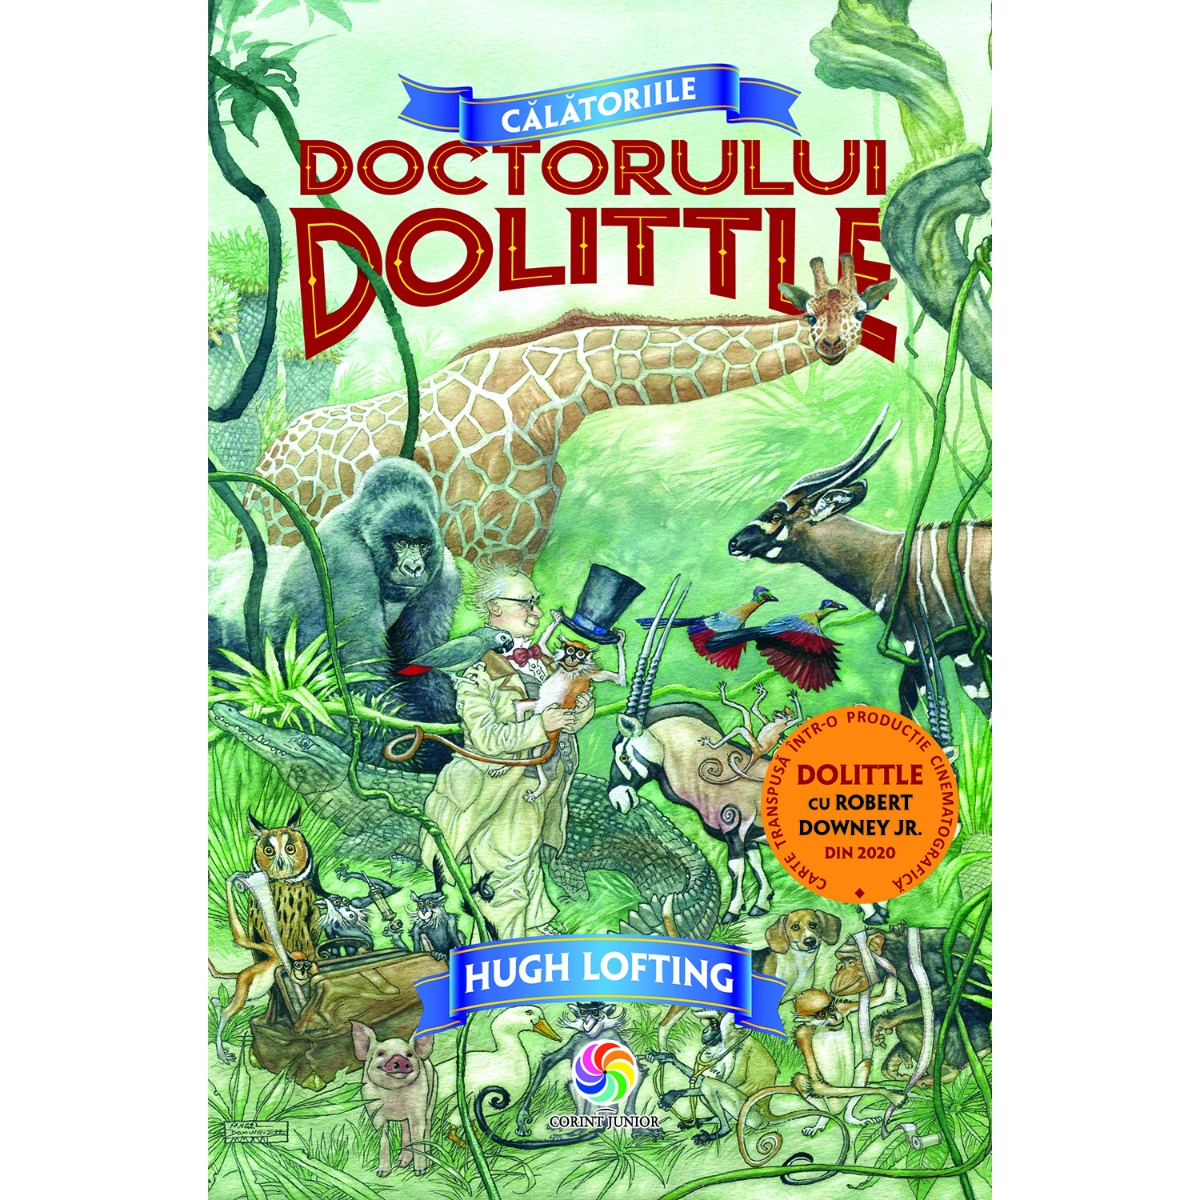 Carte Editura Corint, Calatoriile doctorului Dolittle, Hugh Lofting